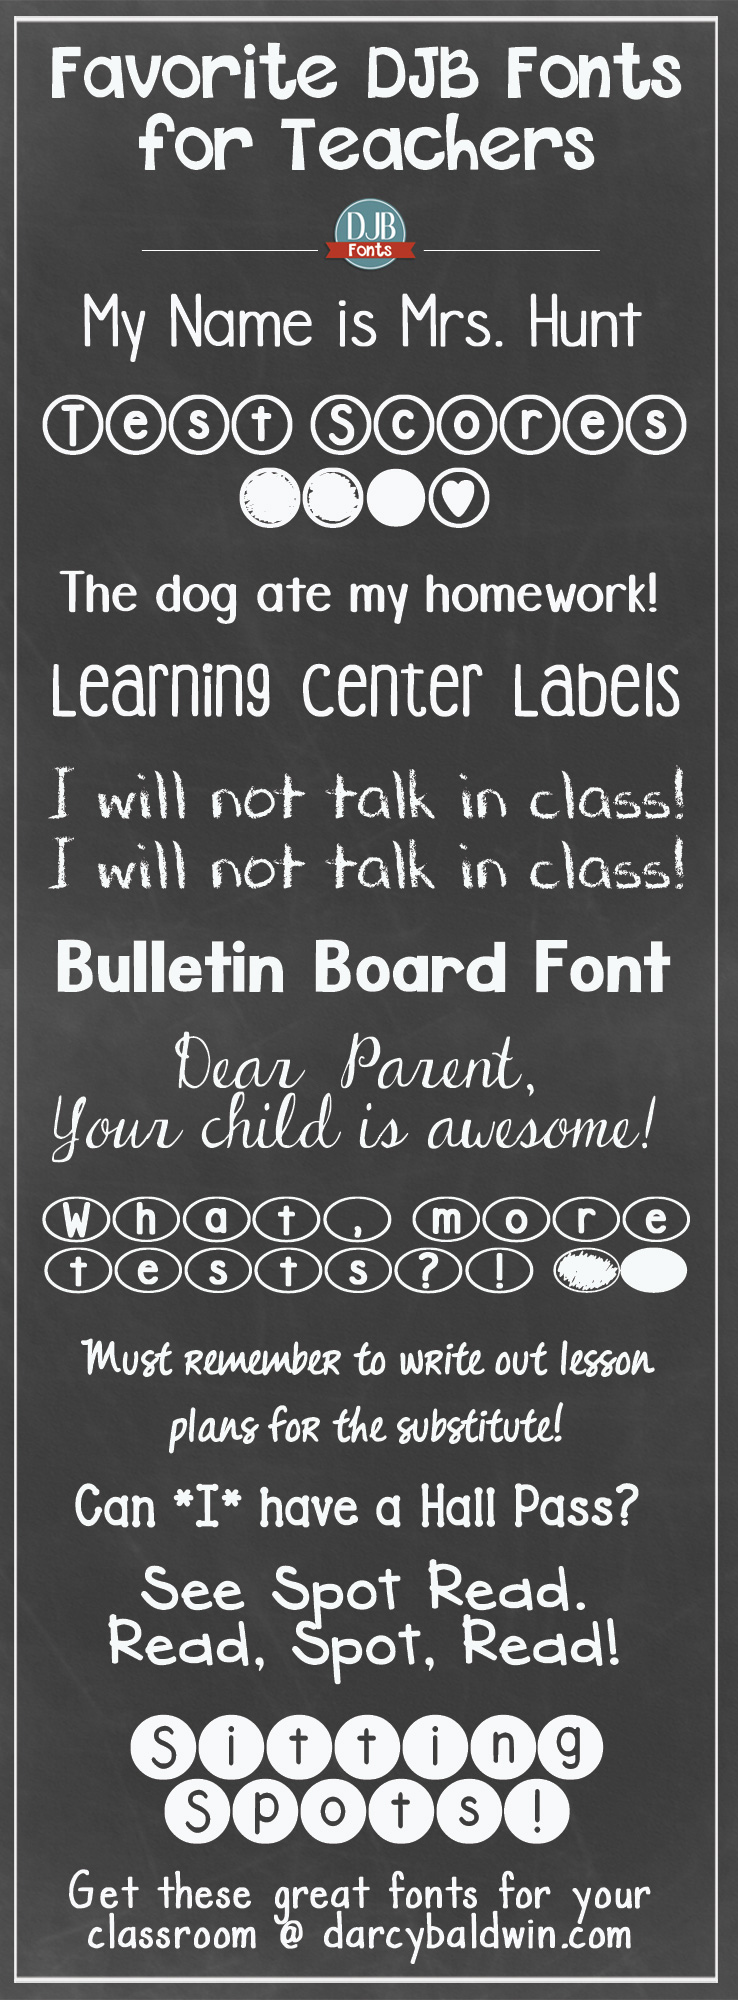 "Back to School is just around the corner!! Here are some free ""for the classroom"" fonts for teachers from DJB Fonts. Which are your favorite teacher fonts?"